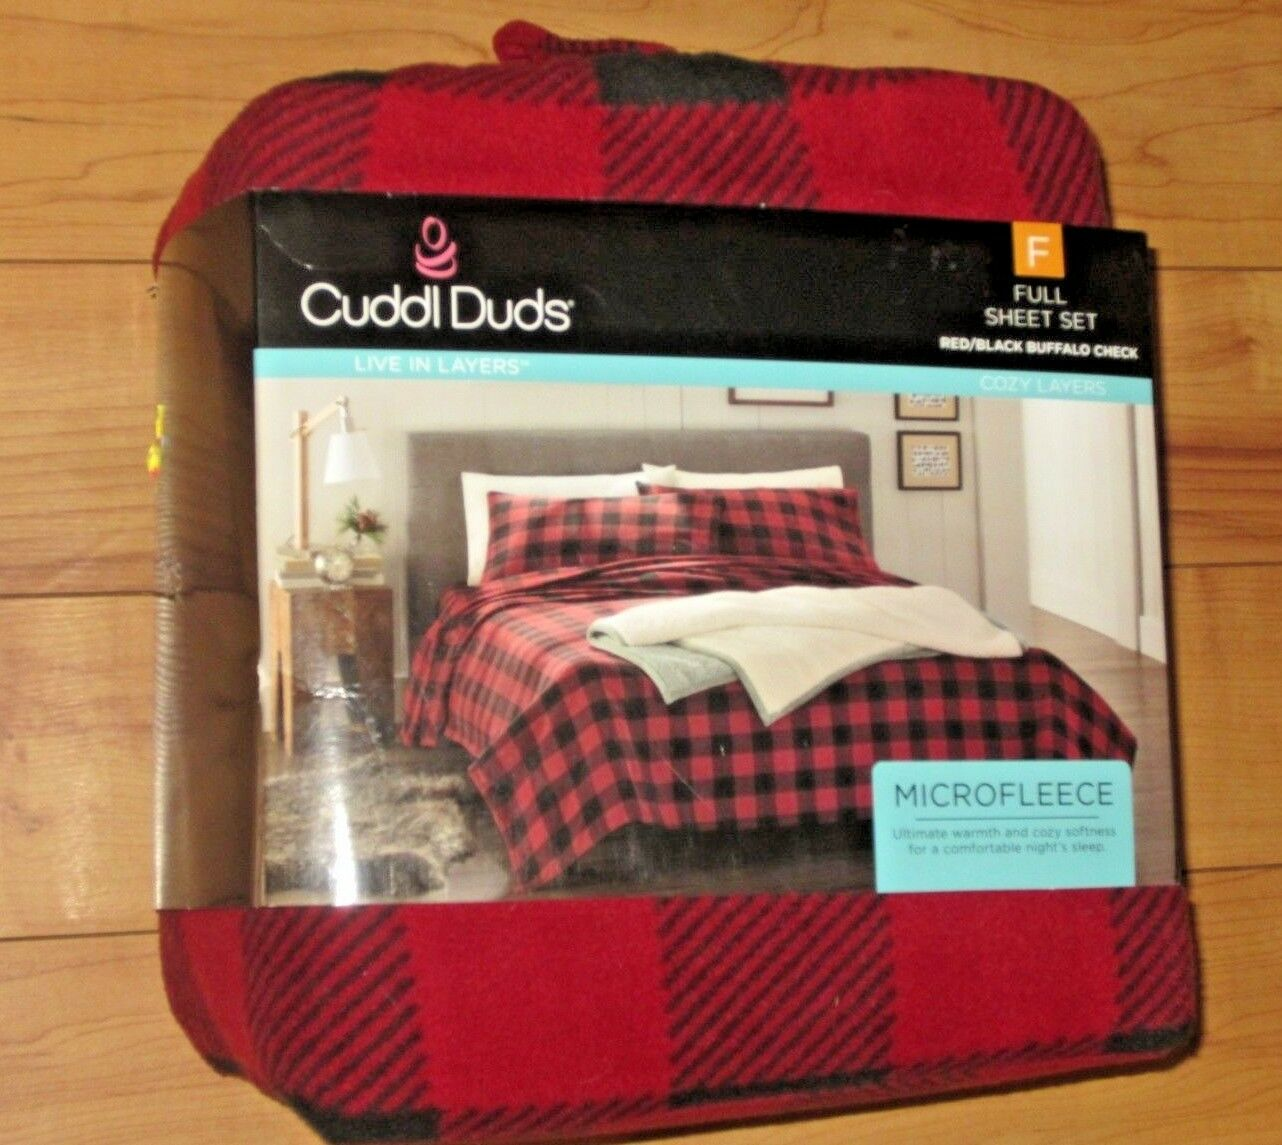 NWT CUDDL DUDS Microfleece Live in Layers Cozy Layers Sheet Sets